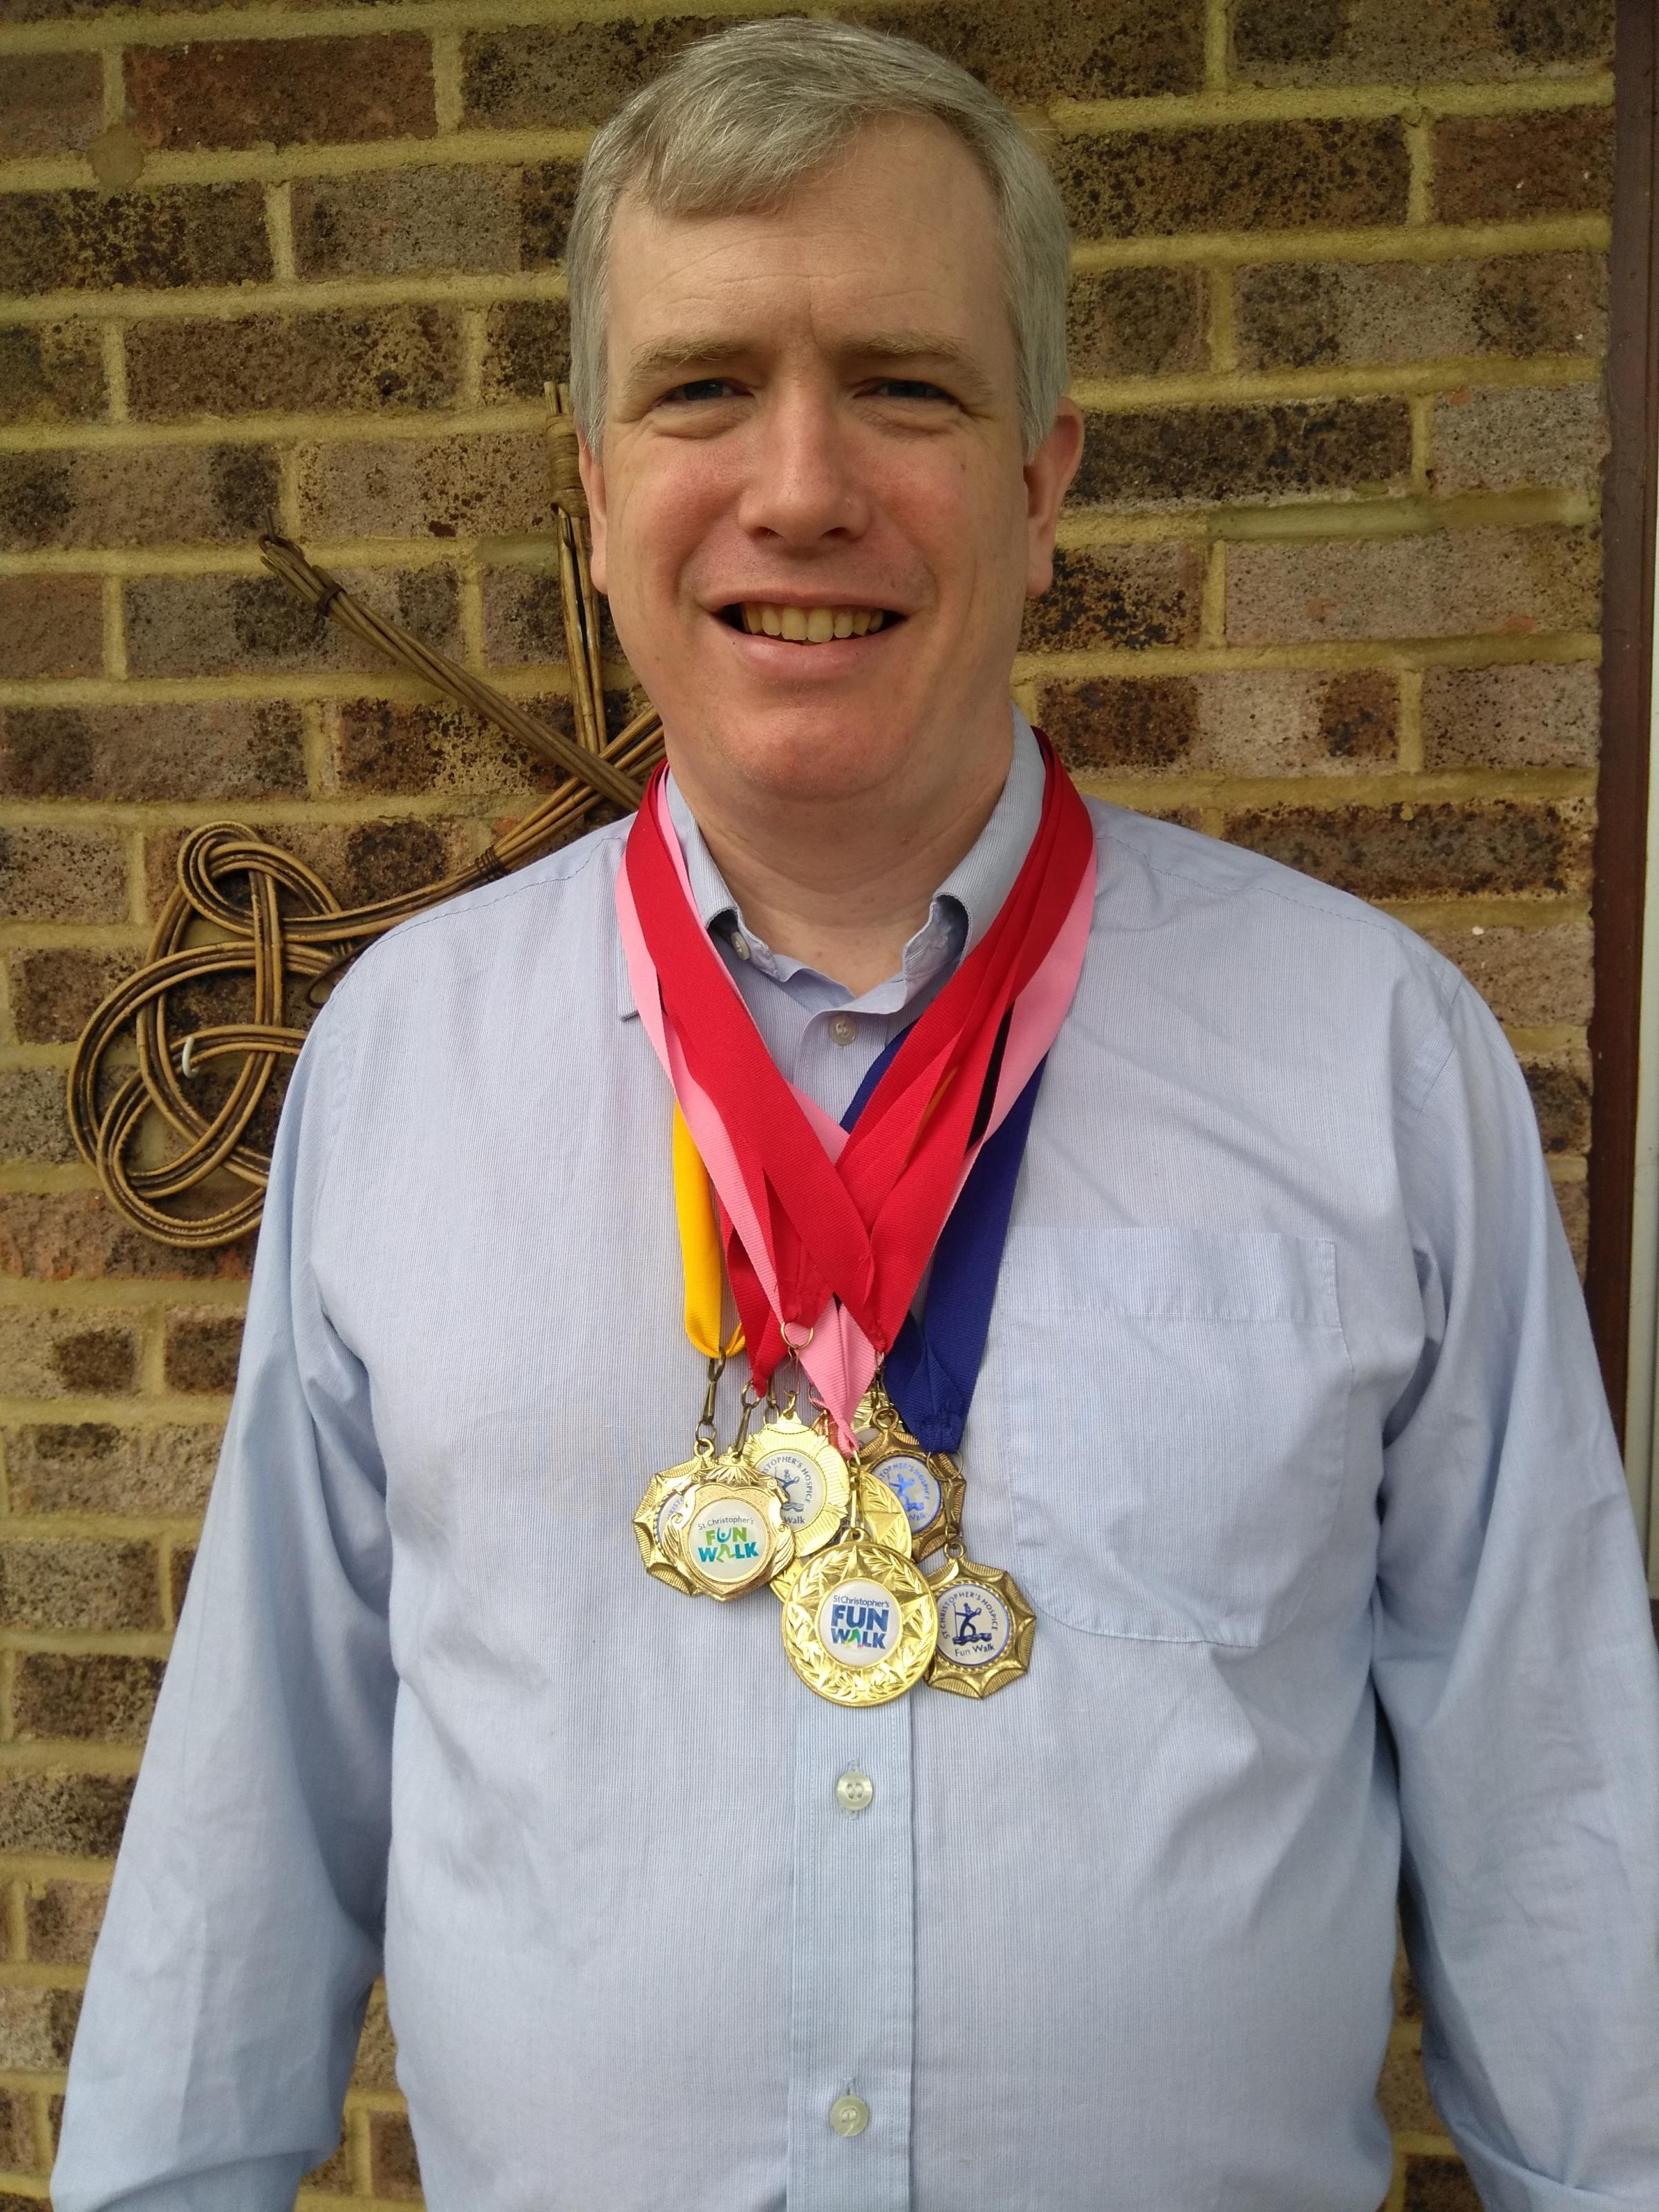 Nigel Callow with his medals